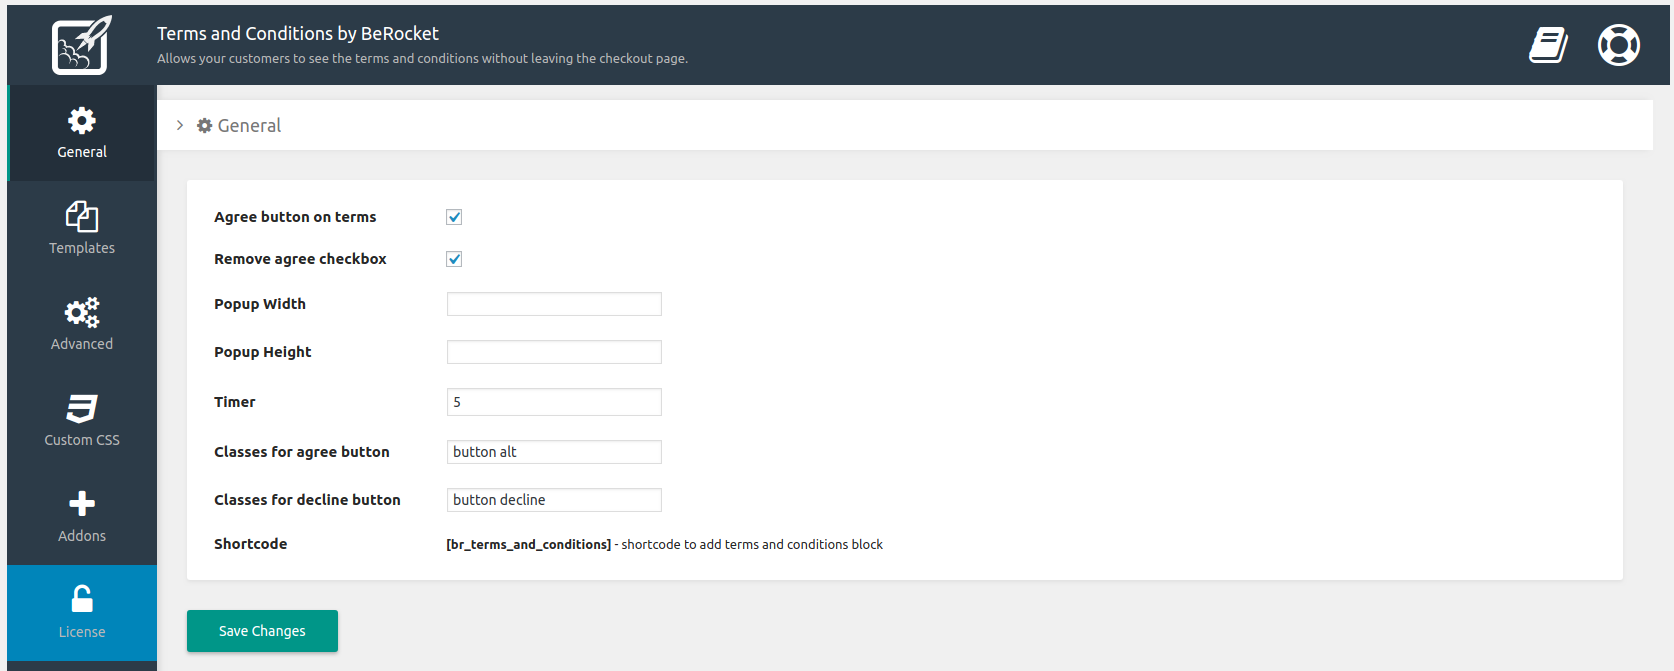 General plugin settings. WooCommerce -> Terms and Conditions Popup -> General